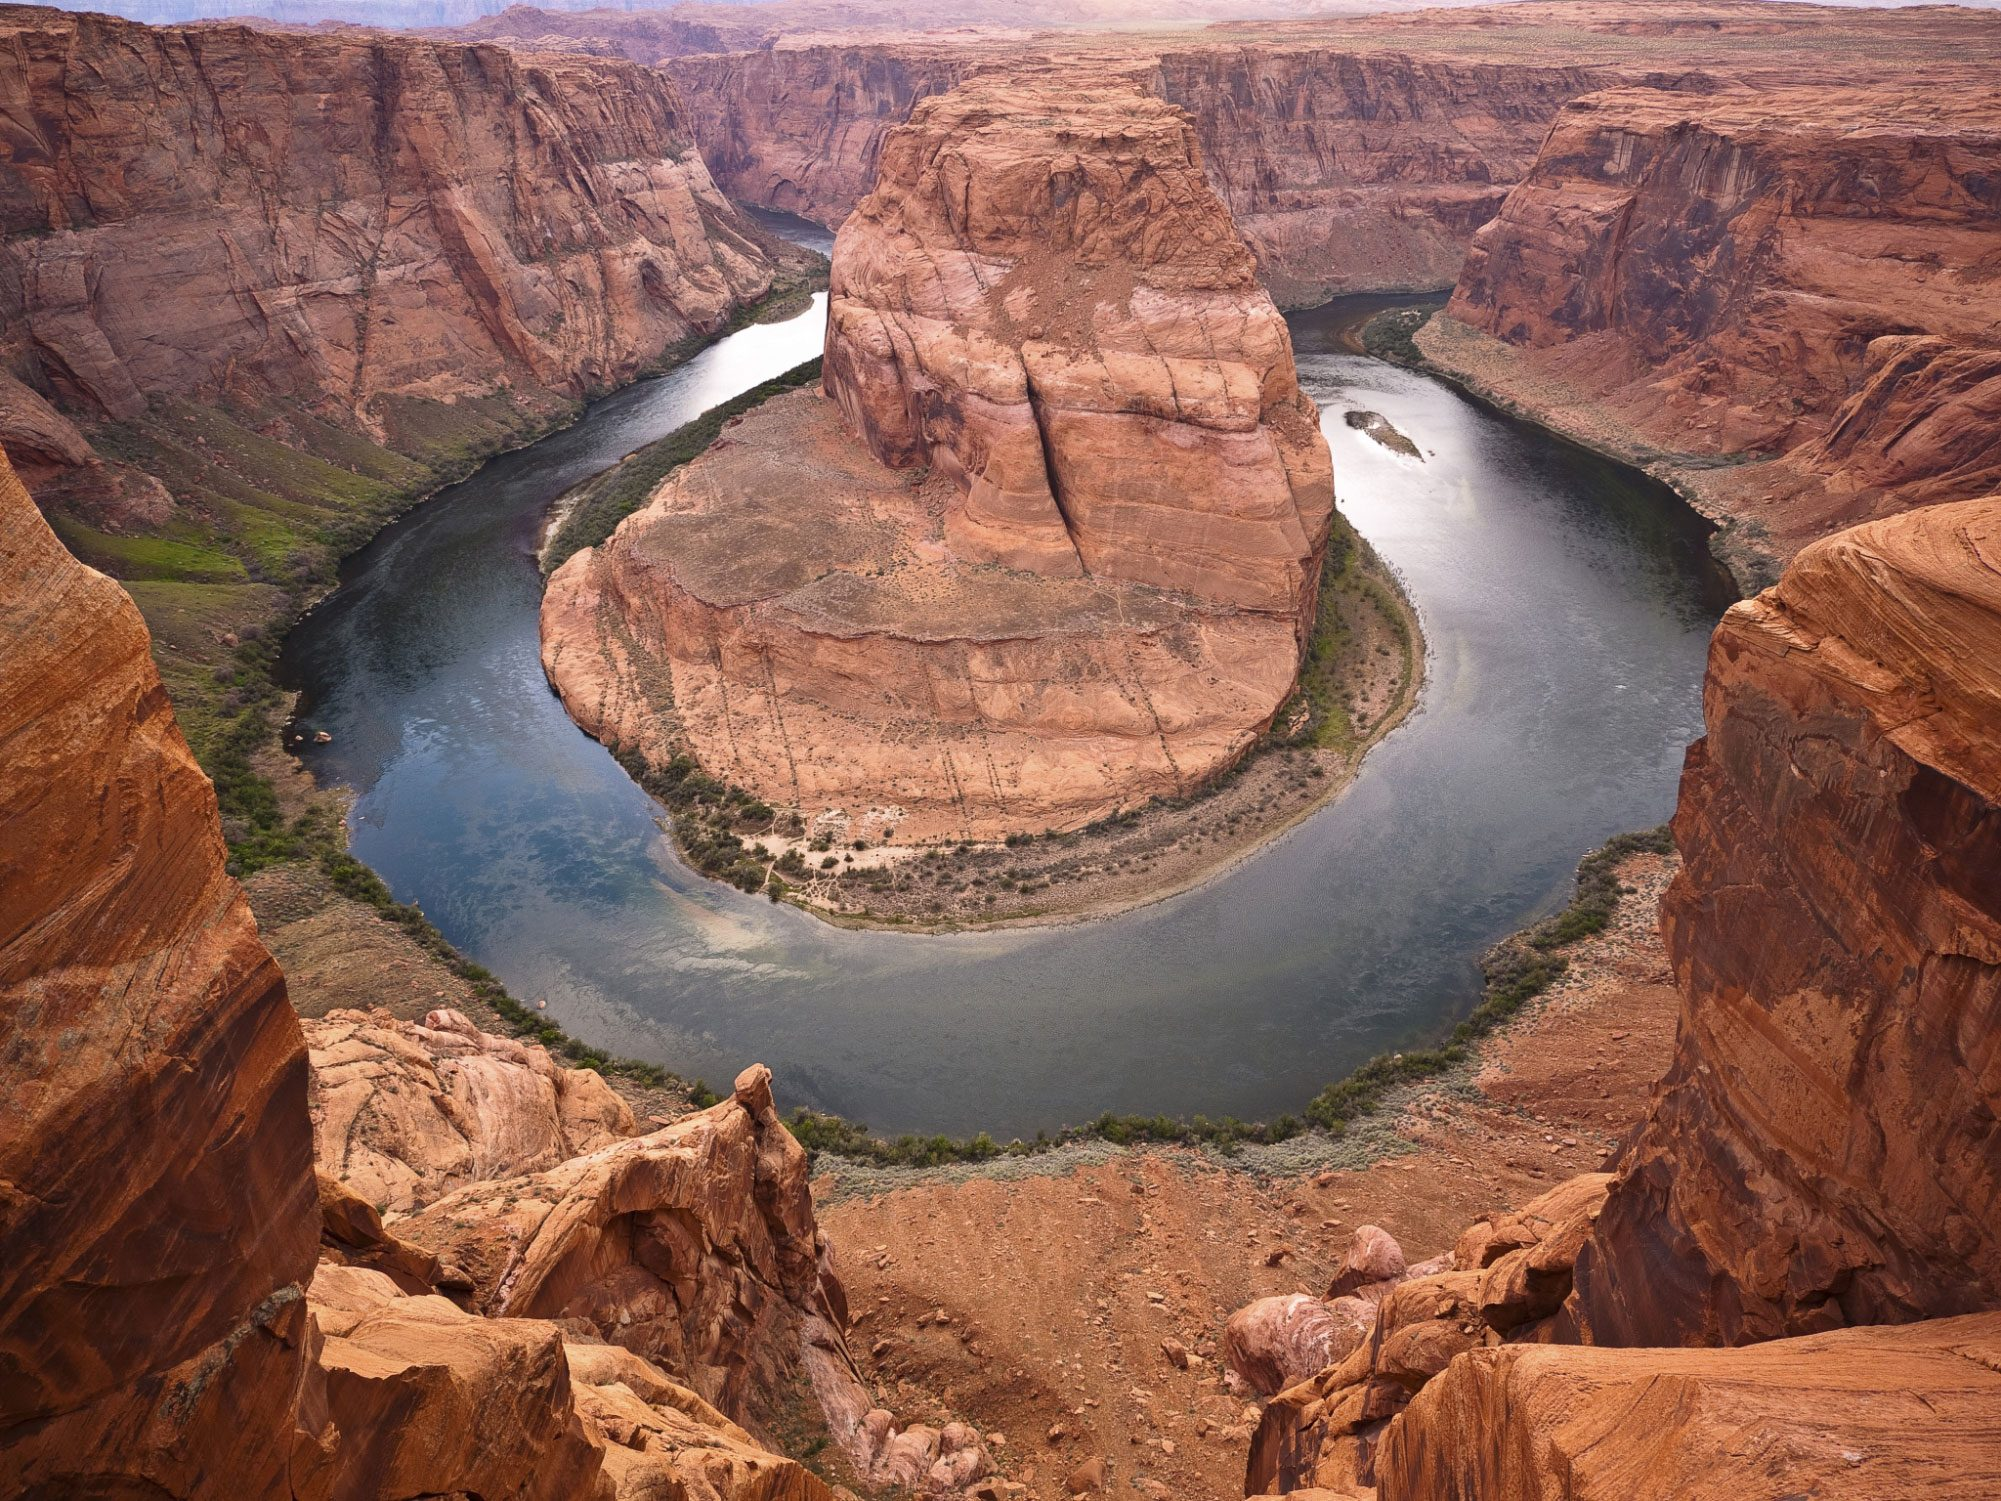 Kayaking or Rafting the Grand Canyon